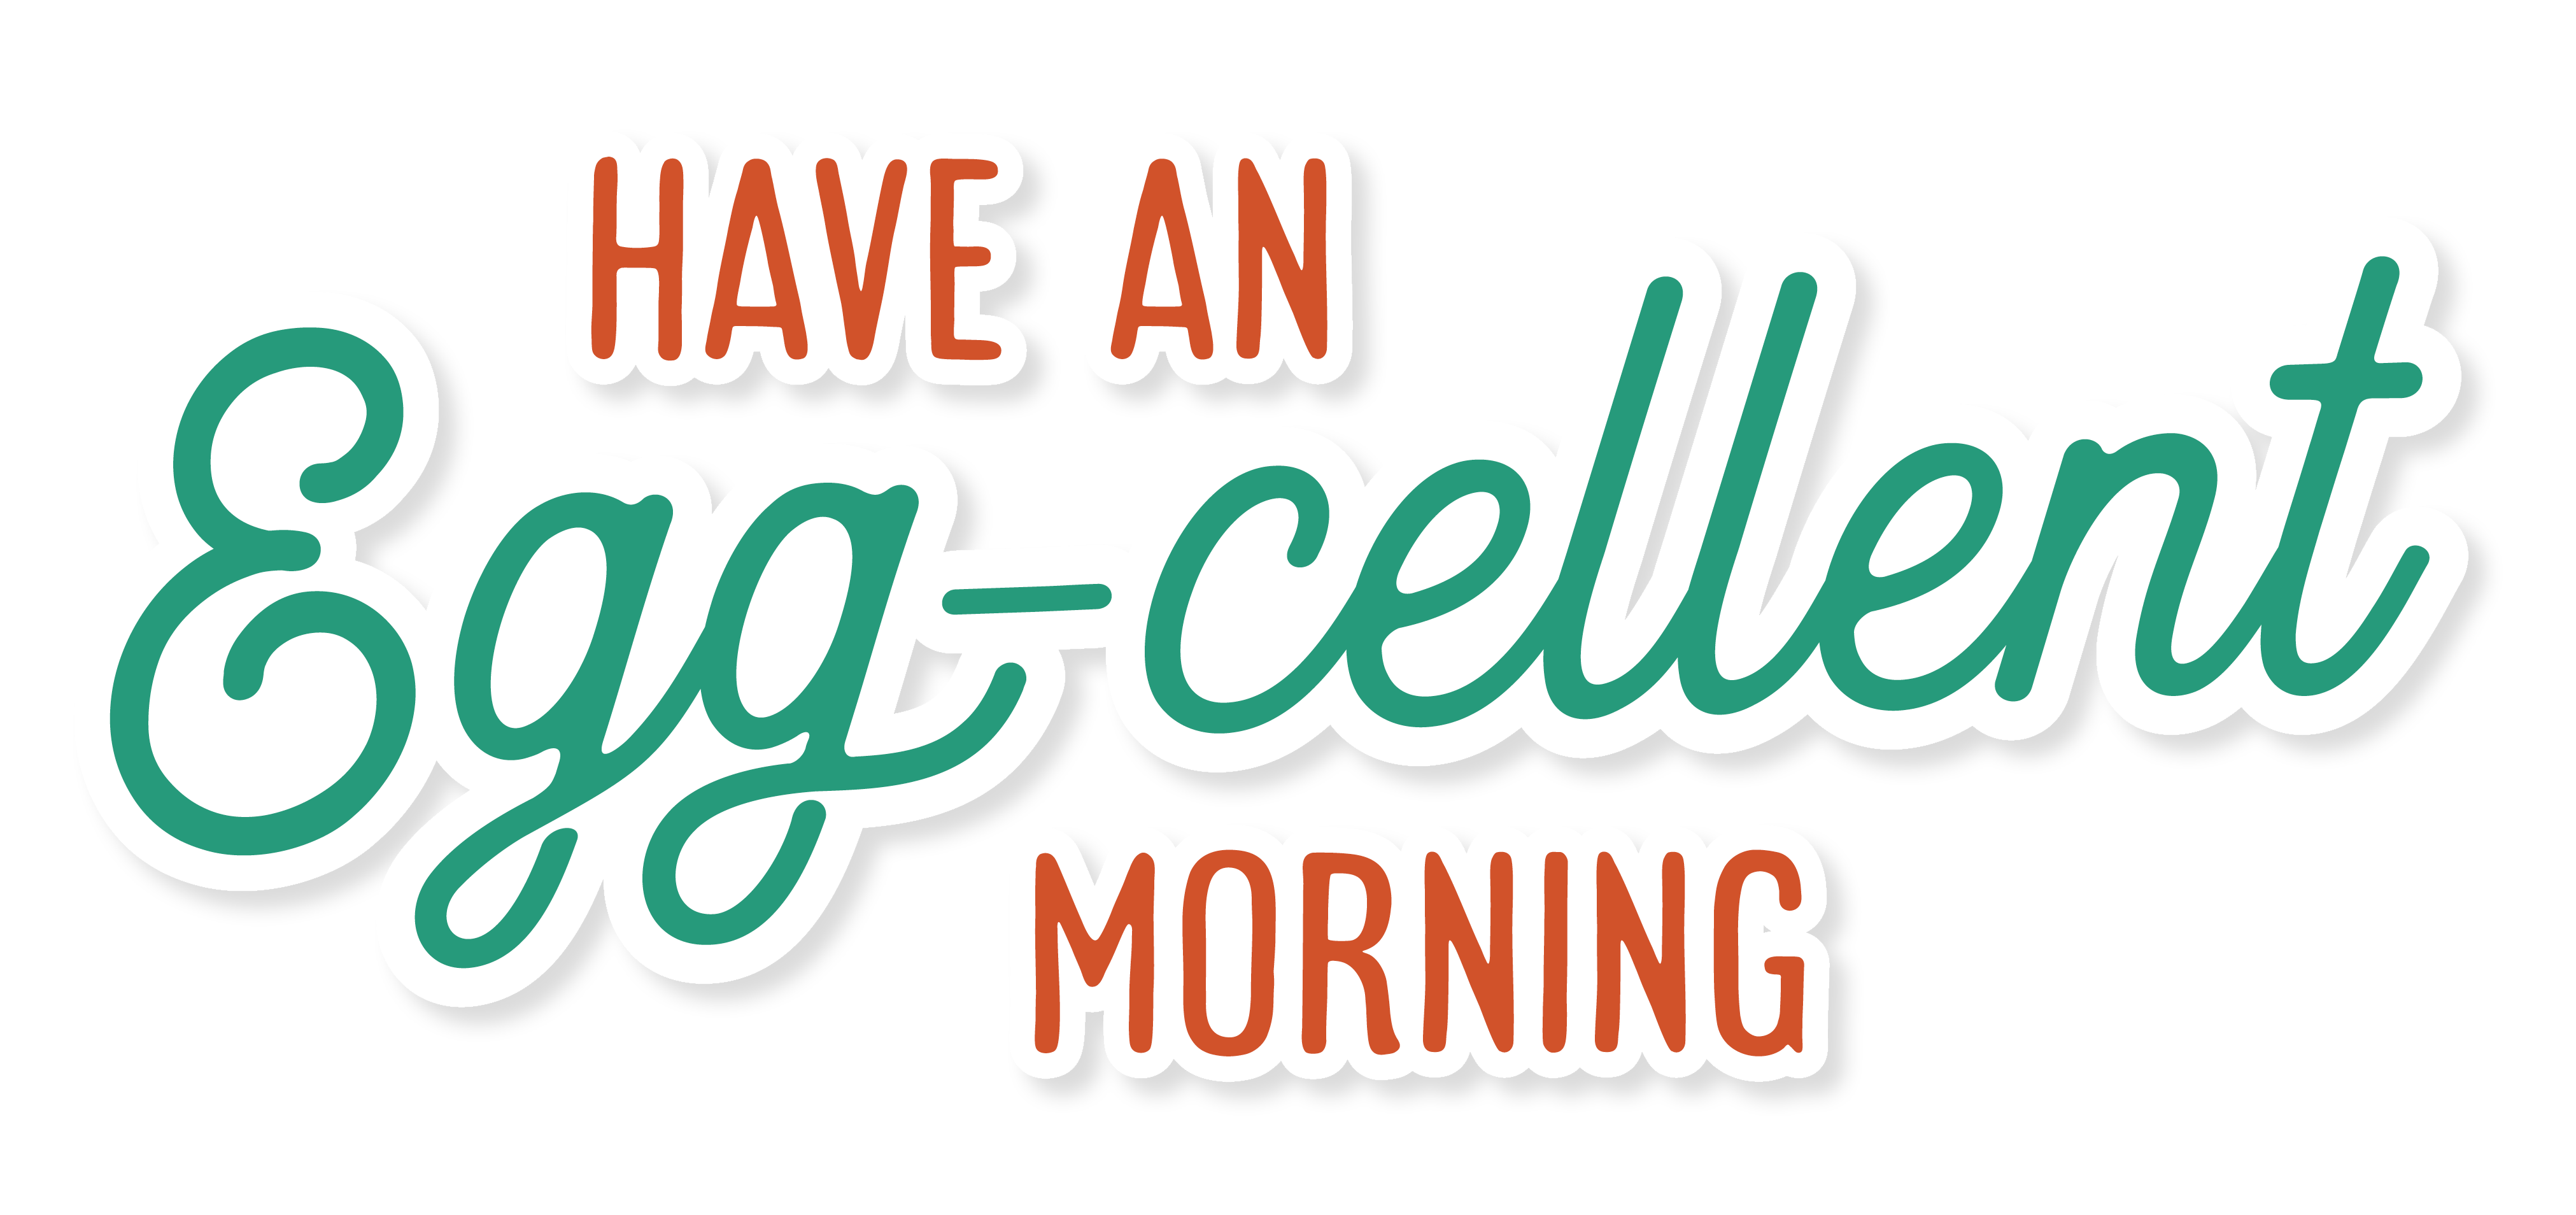 Have an Egg-cellent Morning!